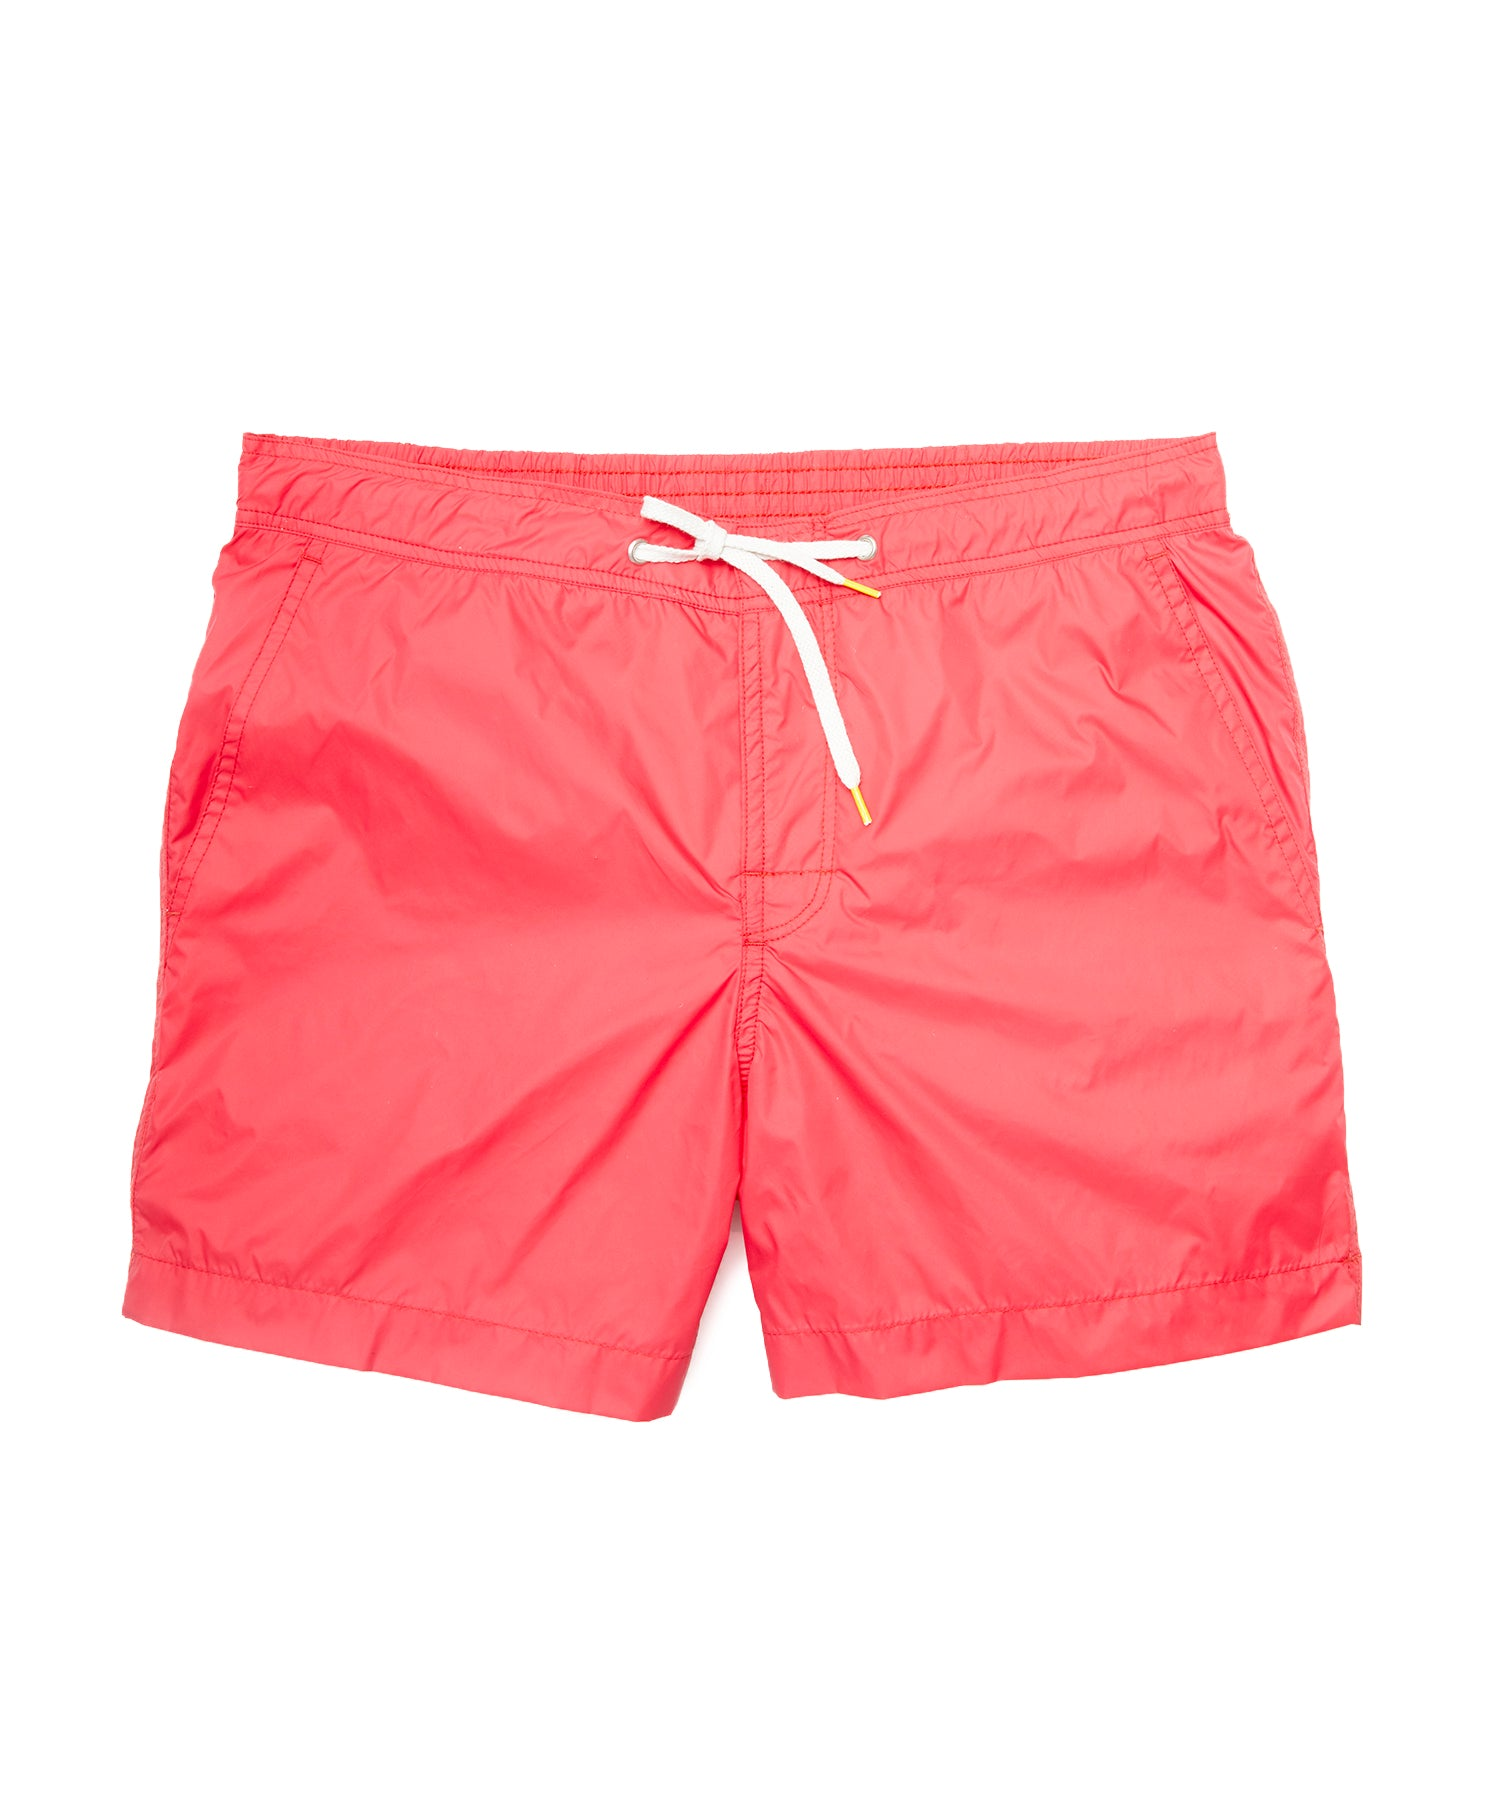 Hartford Kuta Solid Swim Trunks in Red